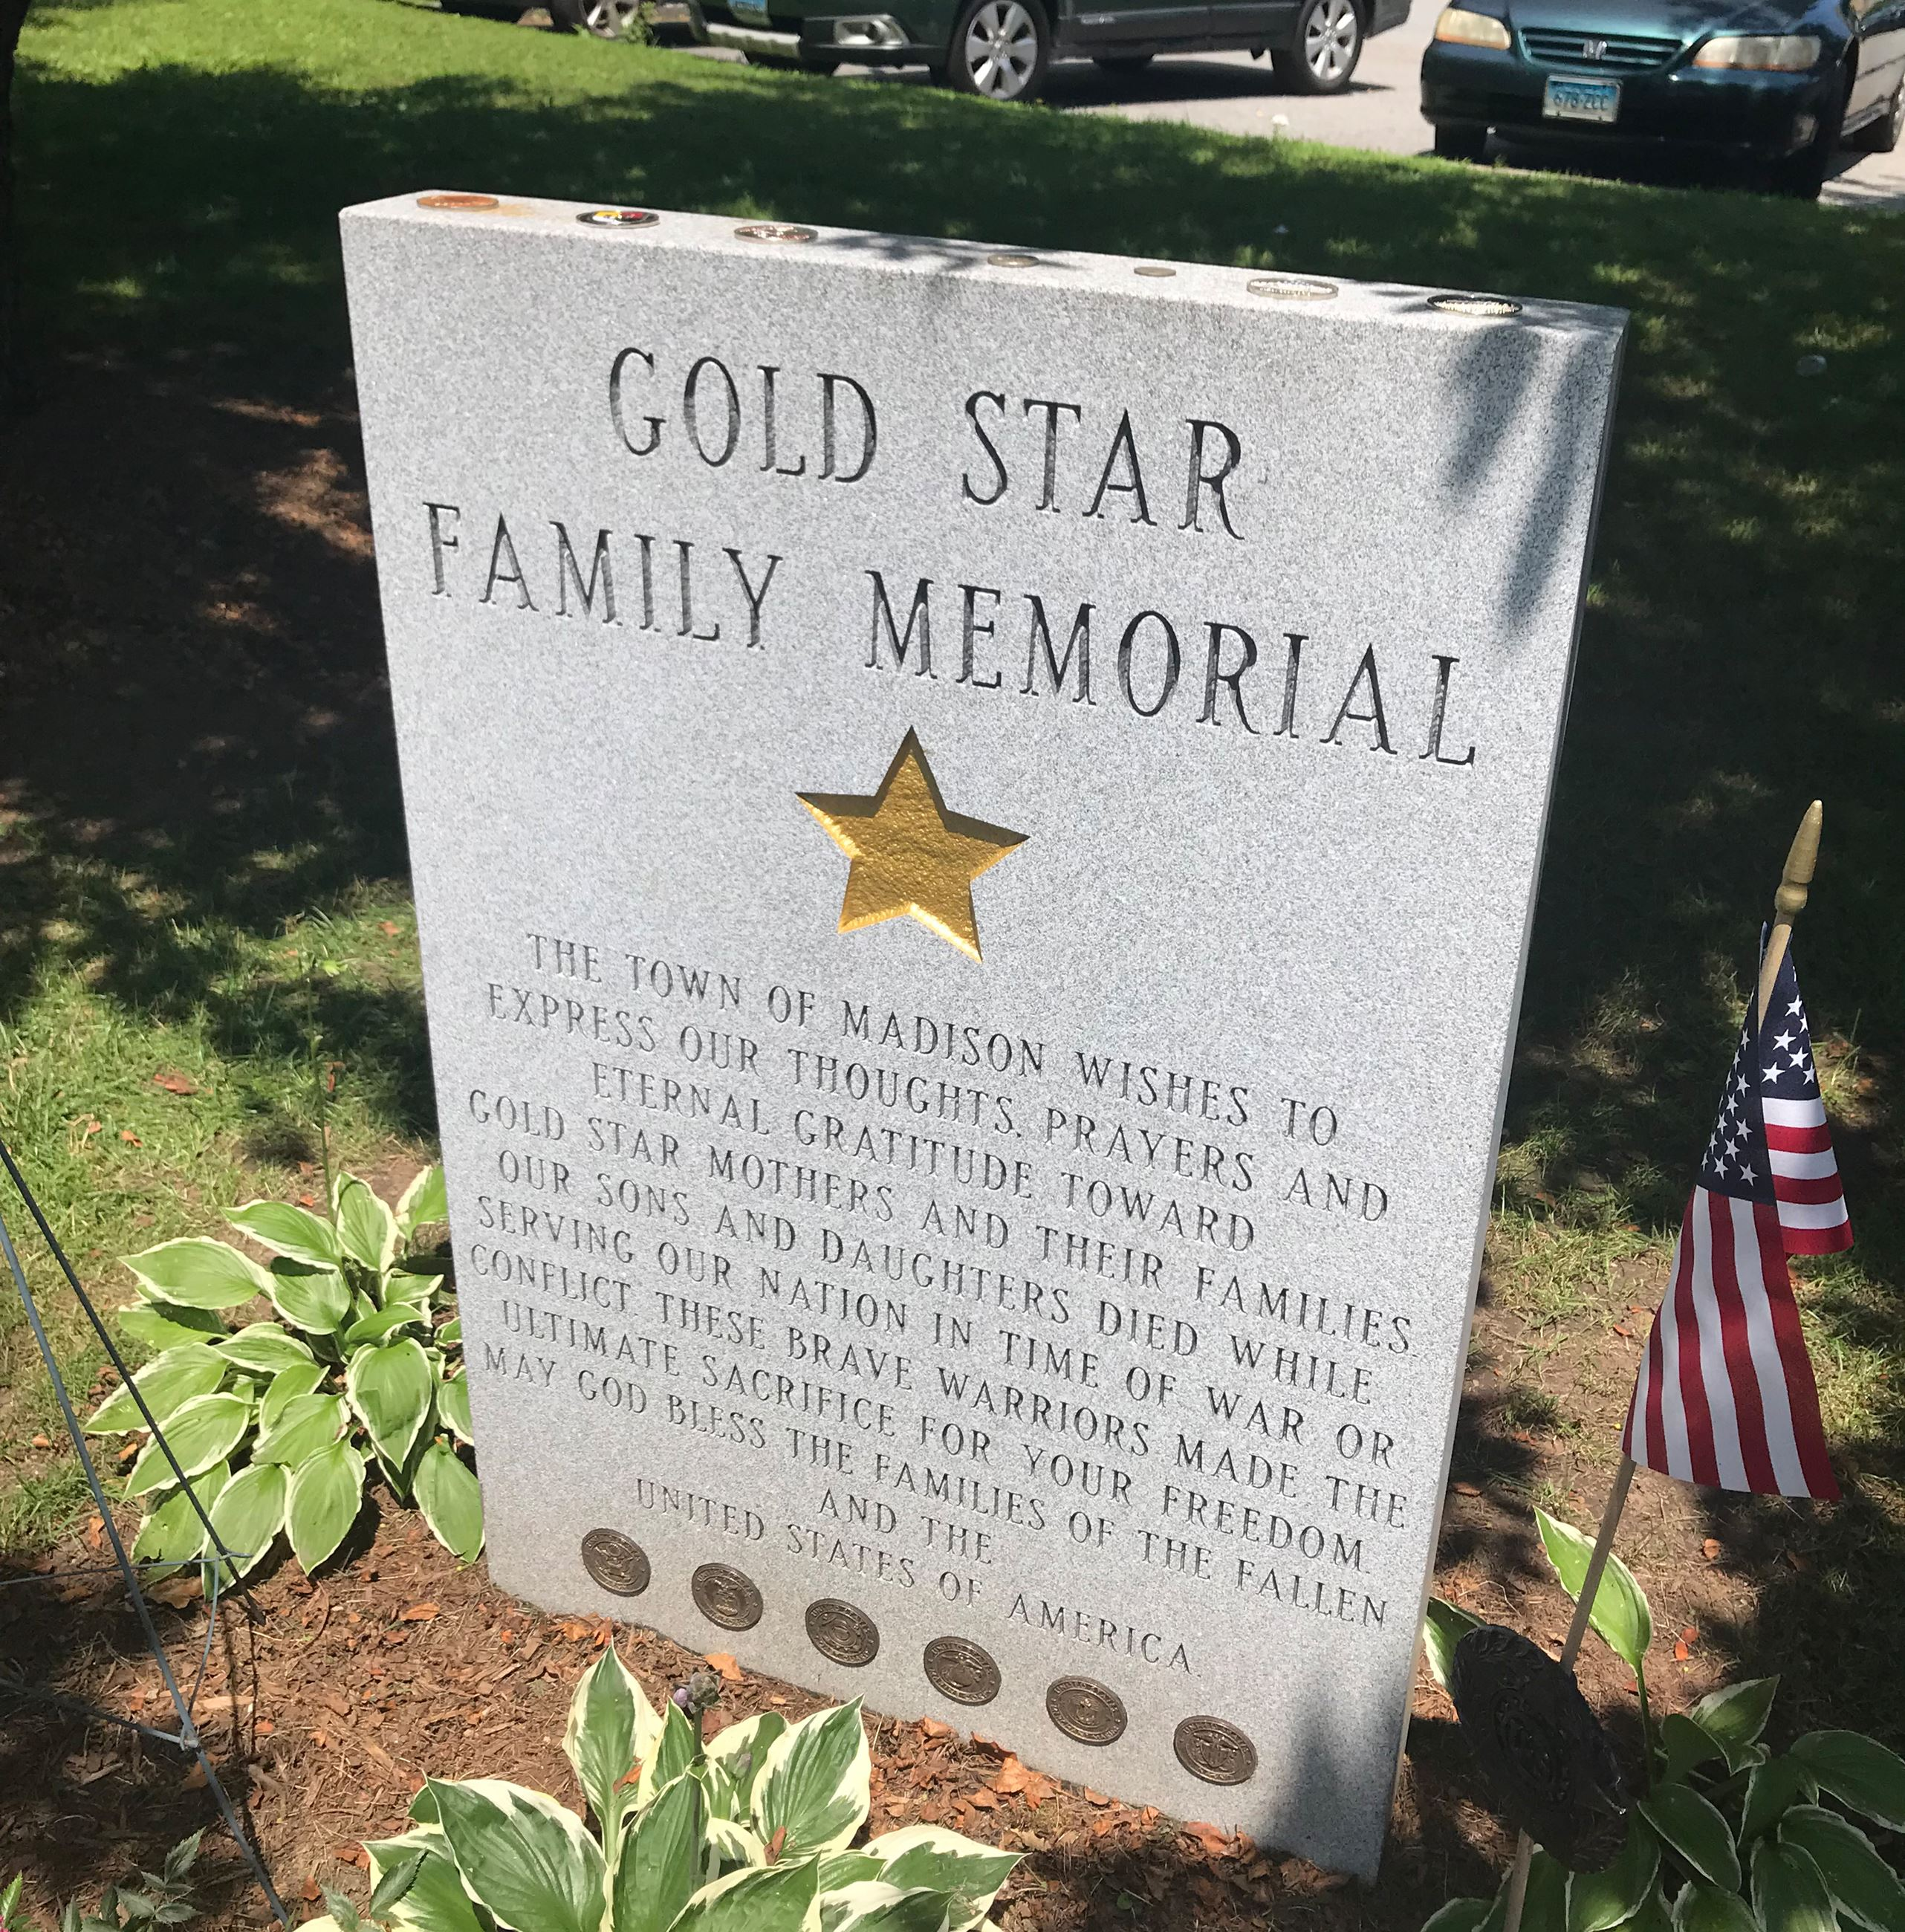 Gold Star Family Memorial